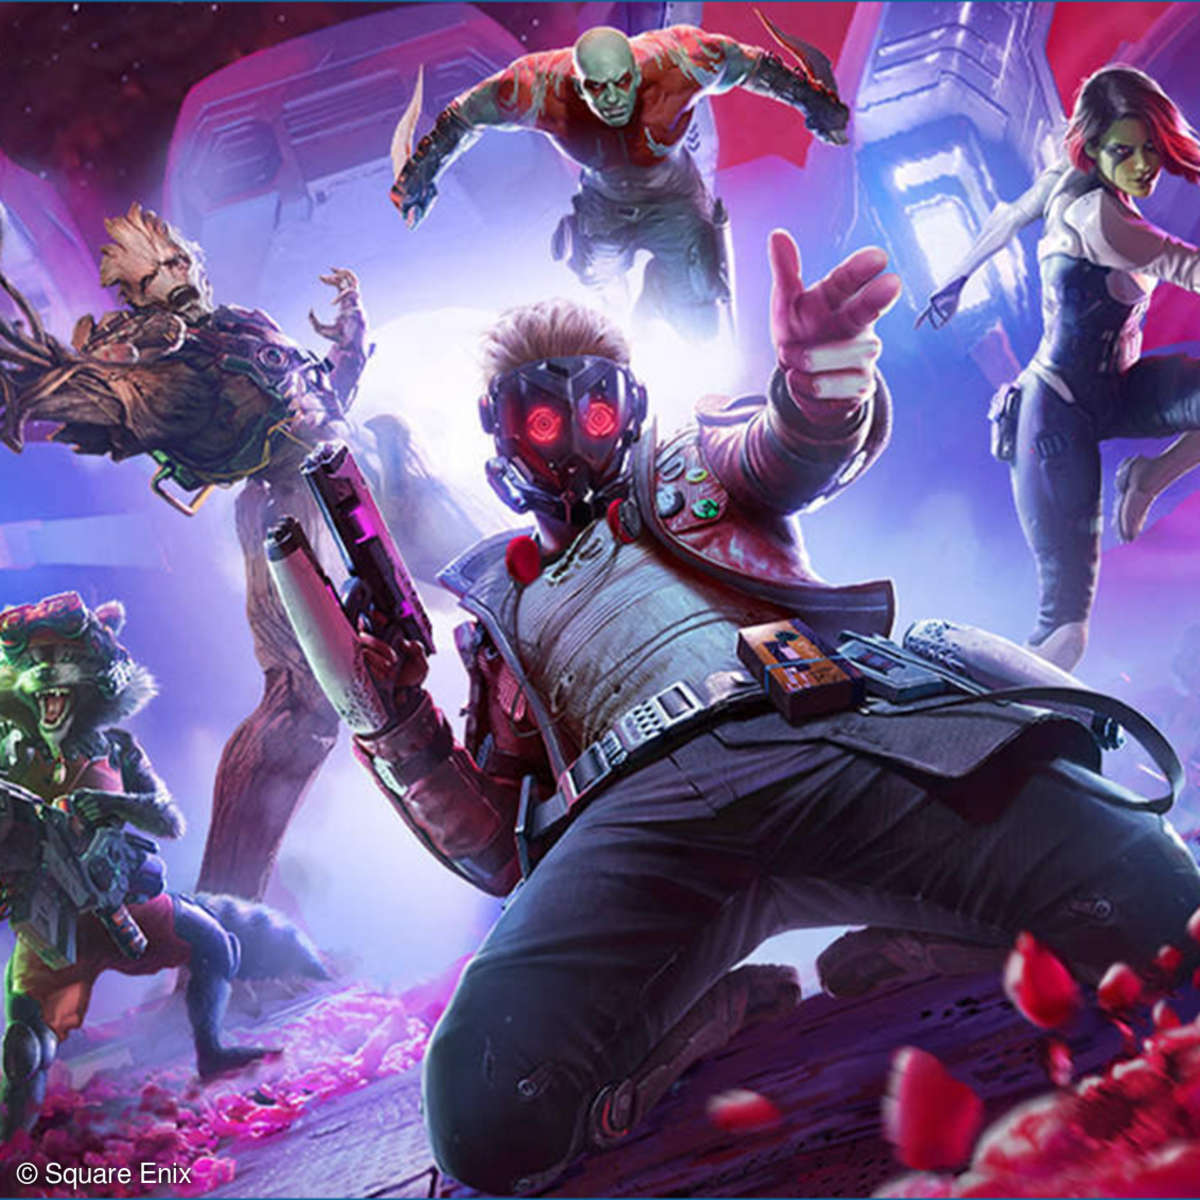 Die Guardians of the Galaxy in Actionpose